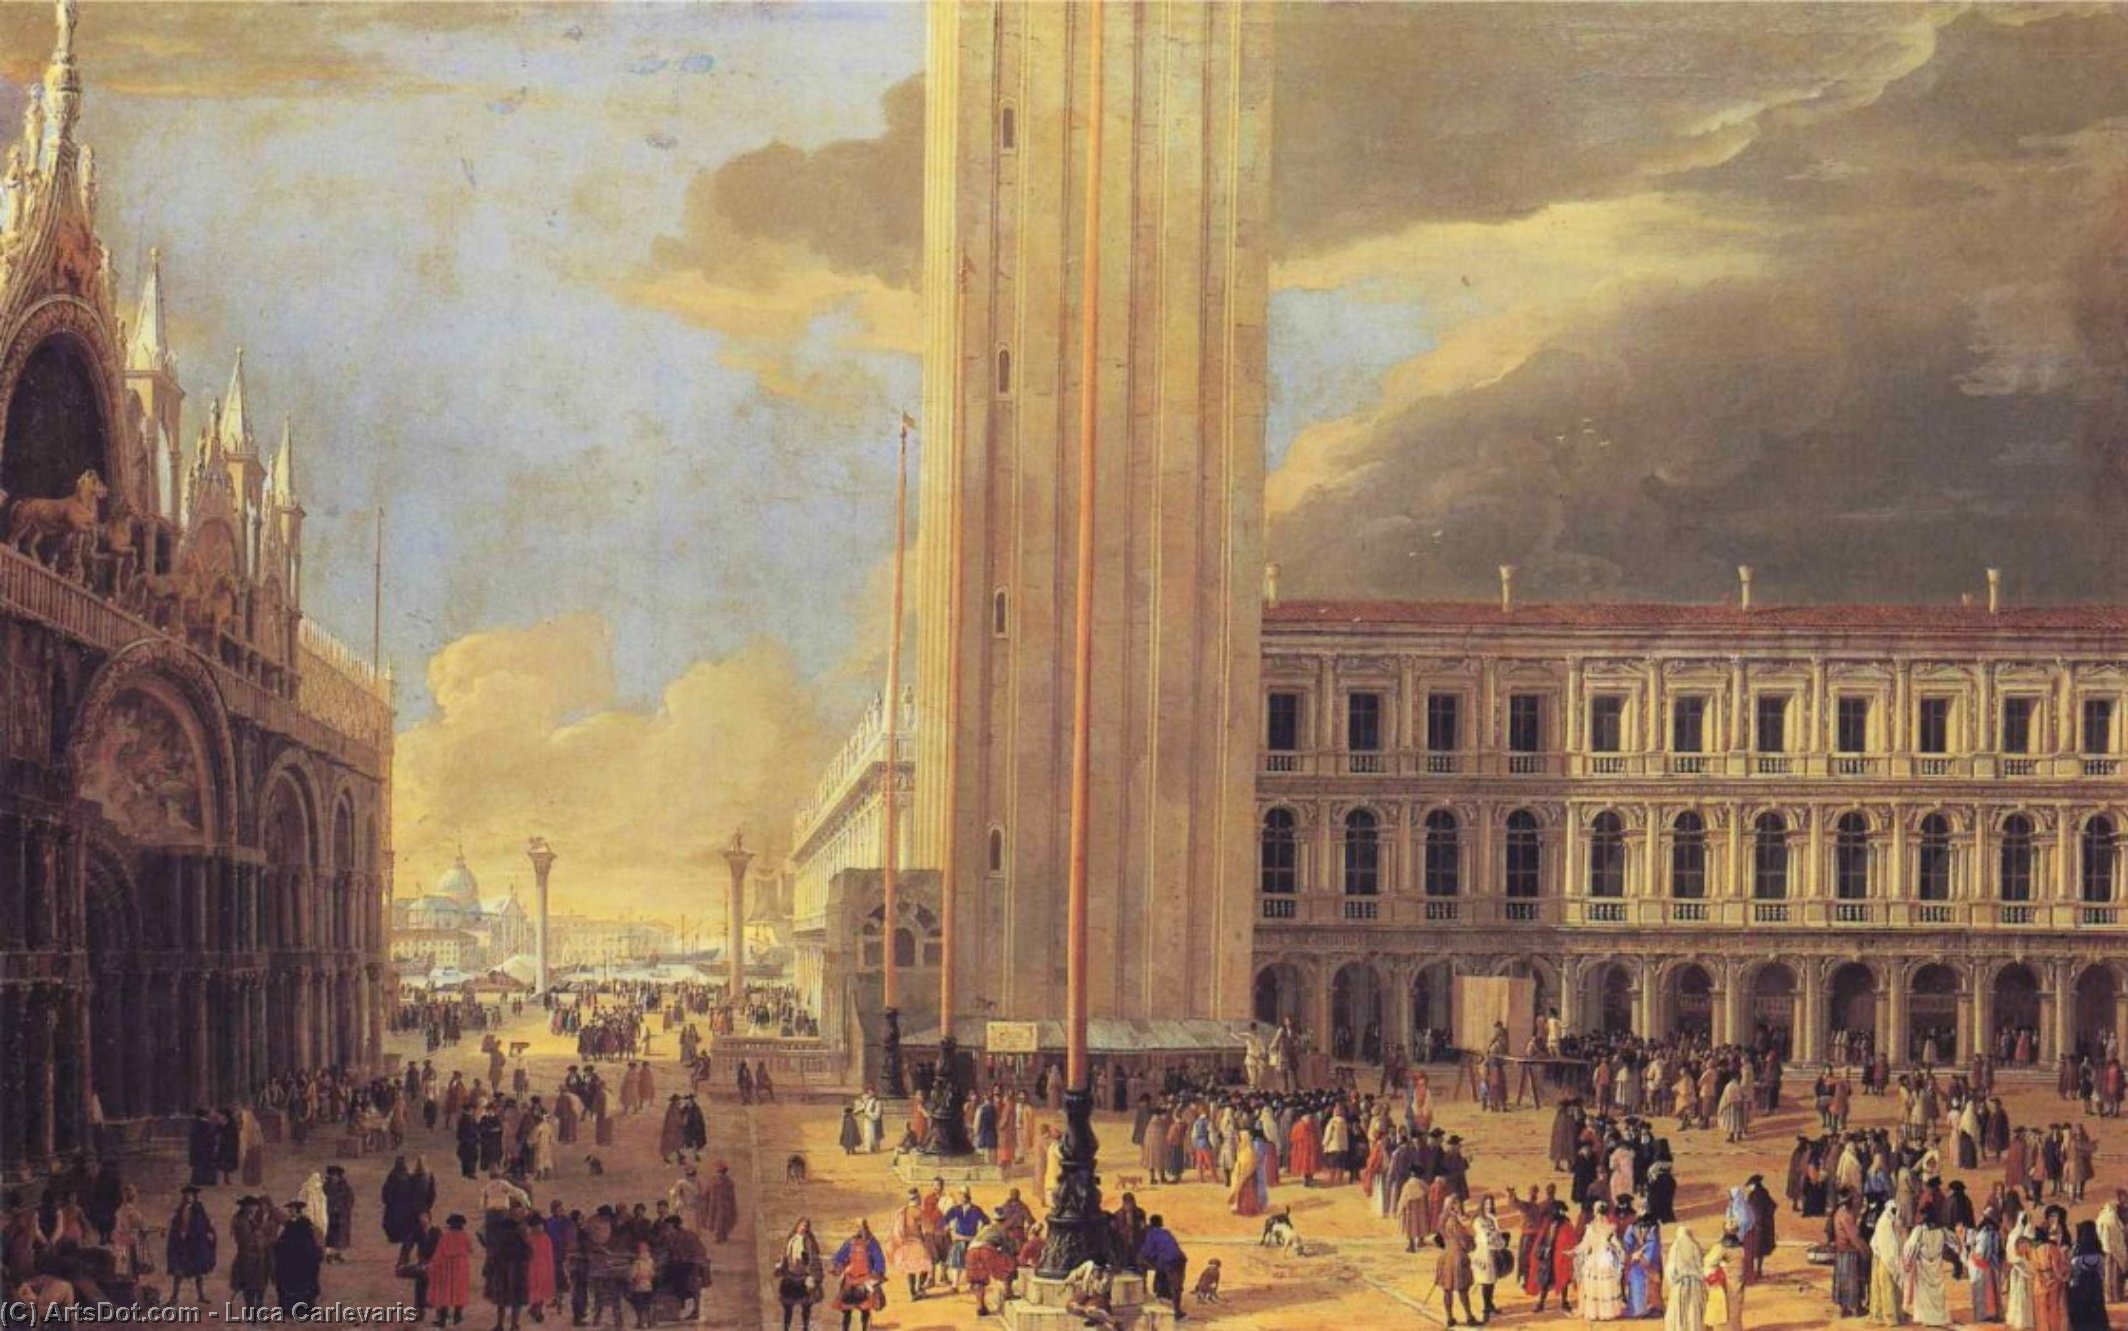 St. Mark's Square with Charlatans, Oil On Canvas by Luca Carlevaris (1663-1730, Italy)